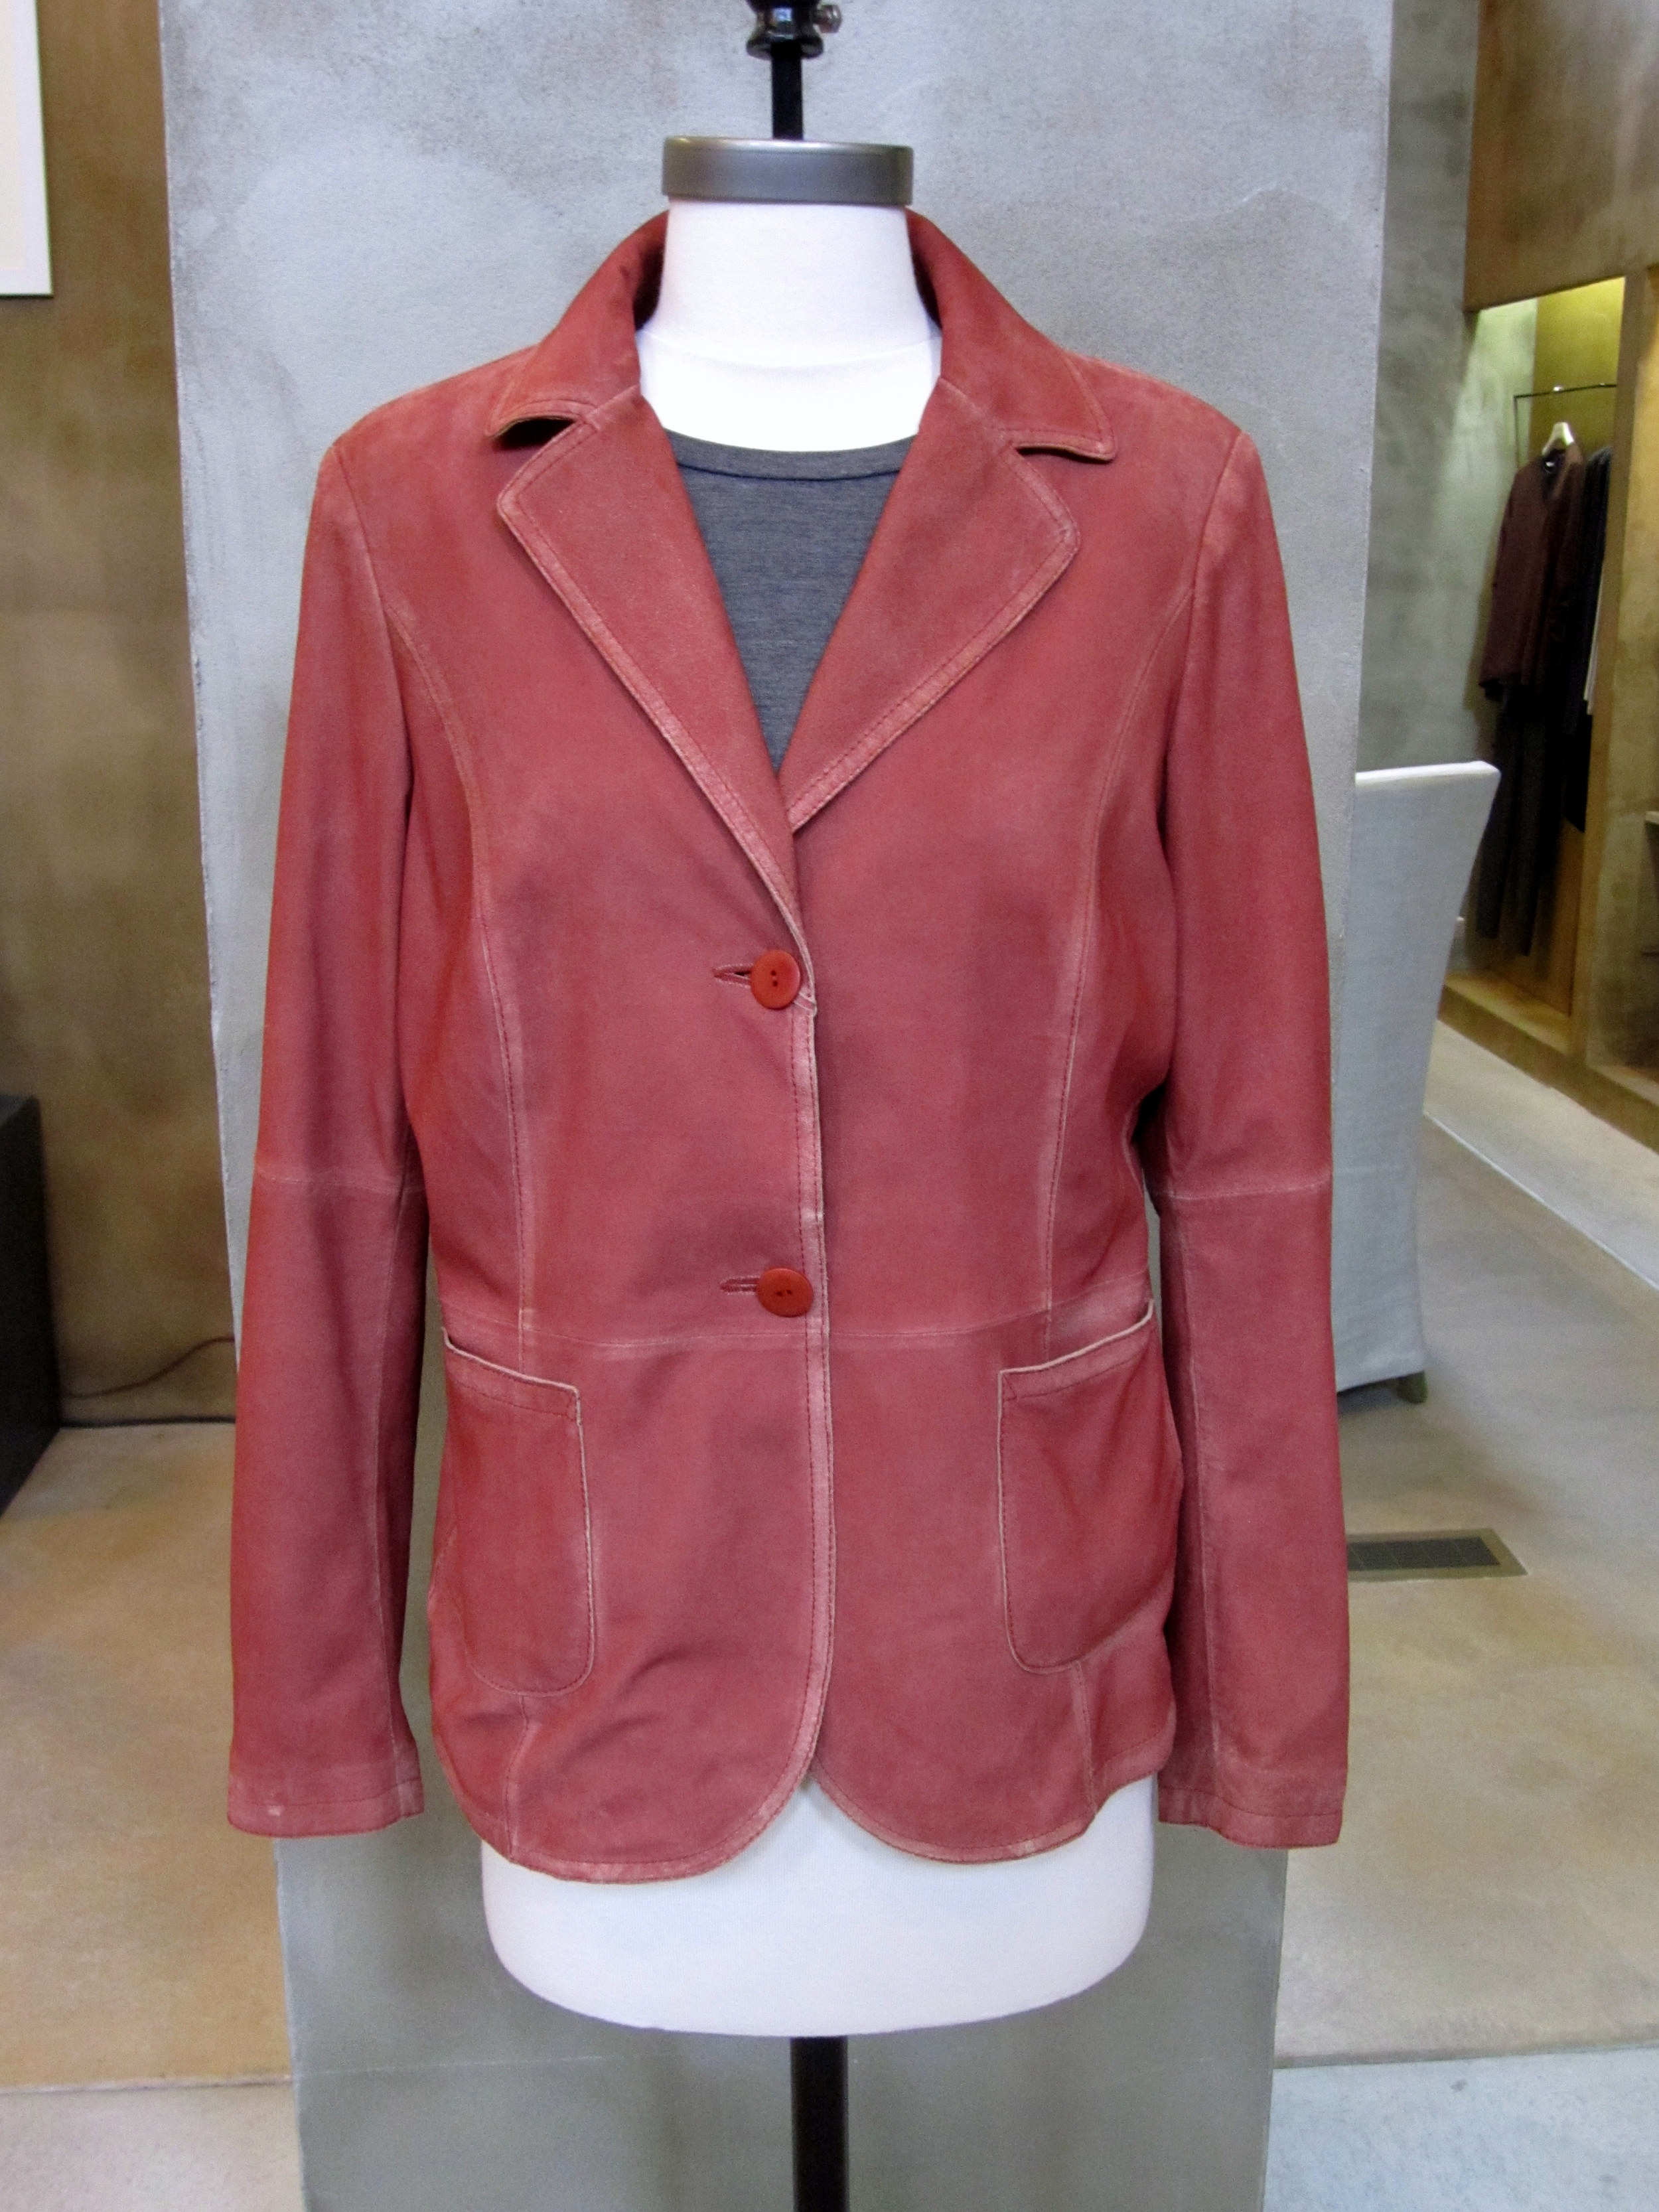 Gimo's Spring 2014 Garment Dyed Suede Jacket. $1185. Made in Italy. Available in Large and X-Large (runs small).